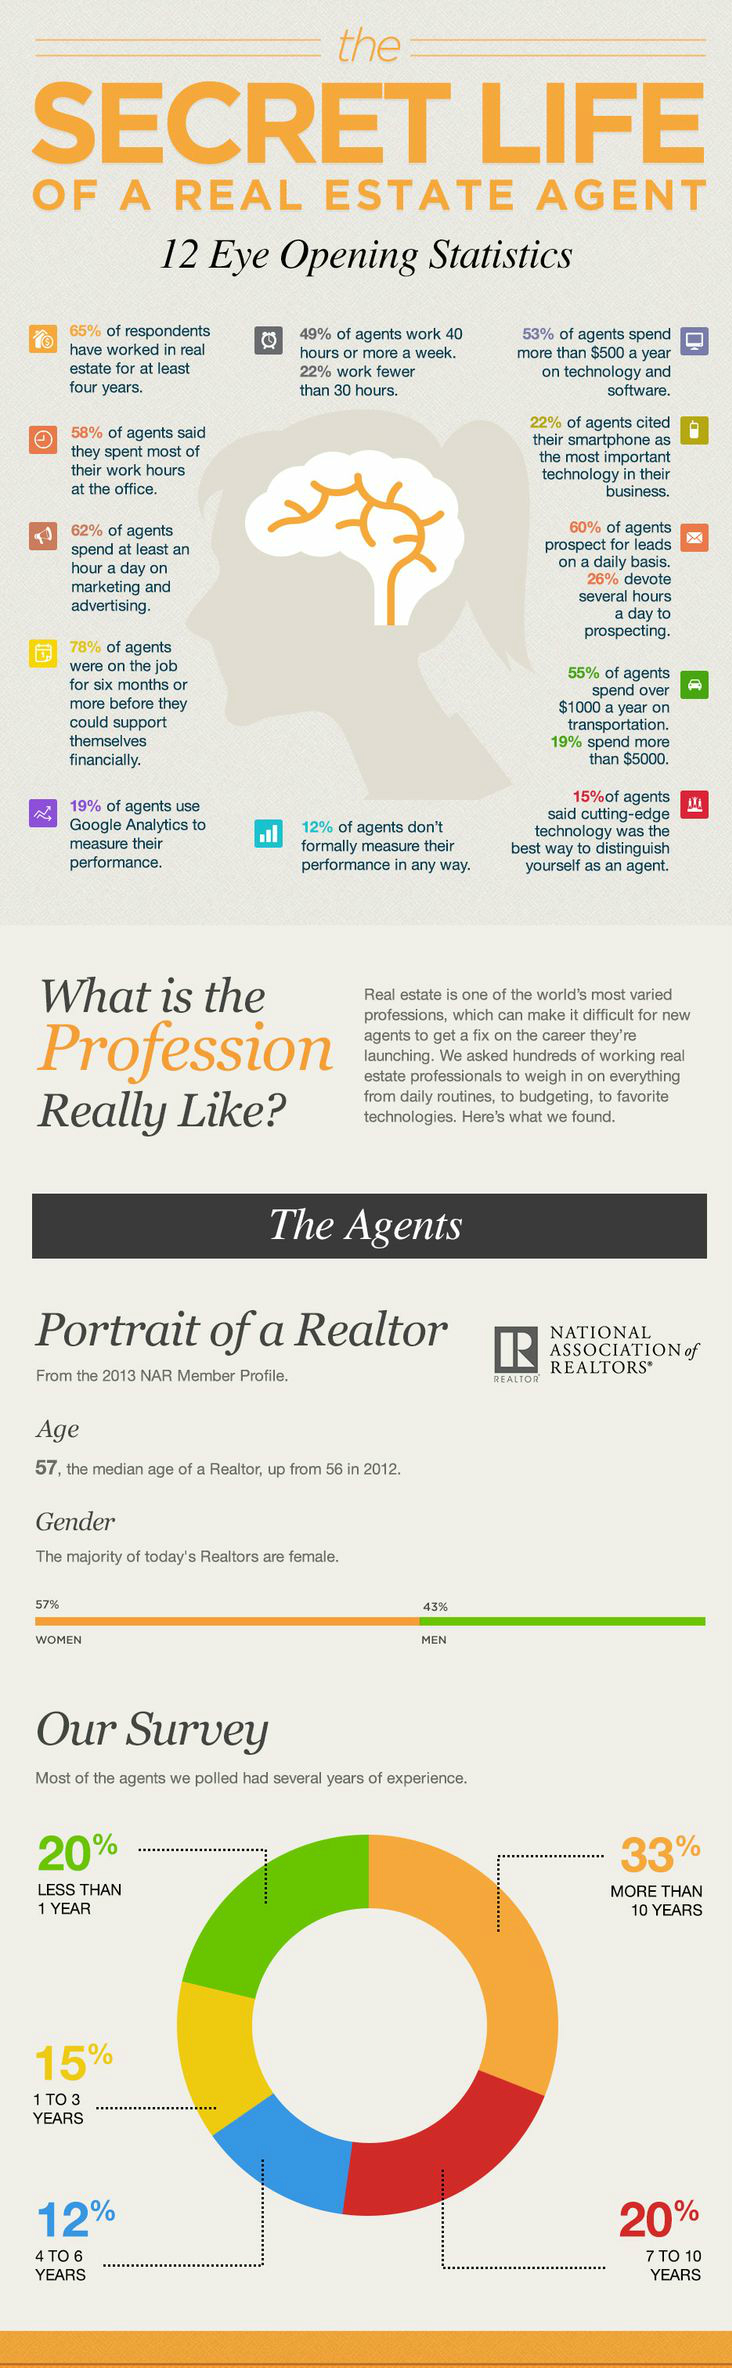 A Glimpse into The Secret Life Of A Real Estate Agent